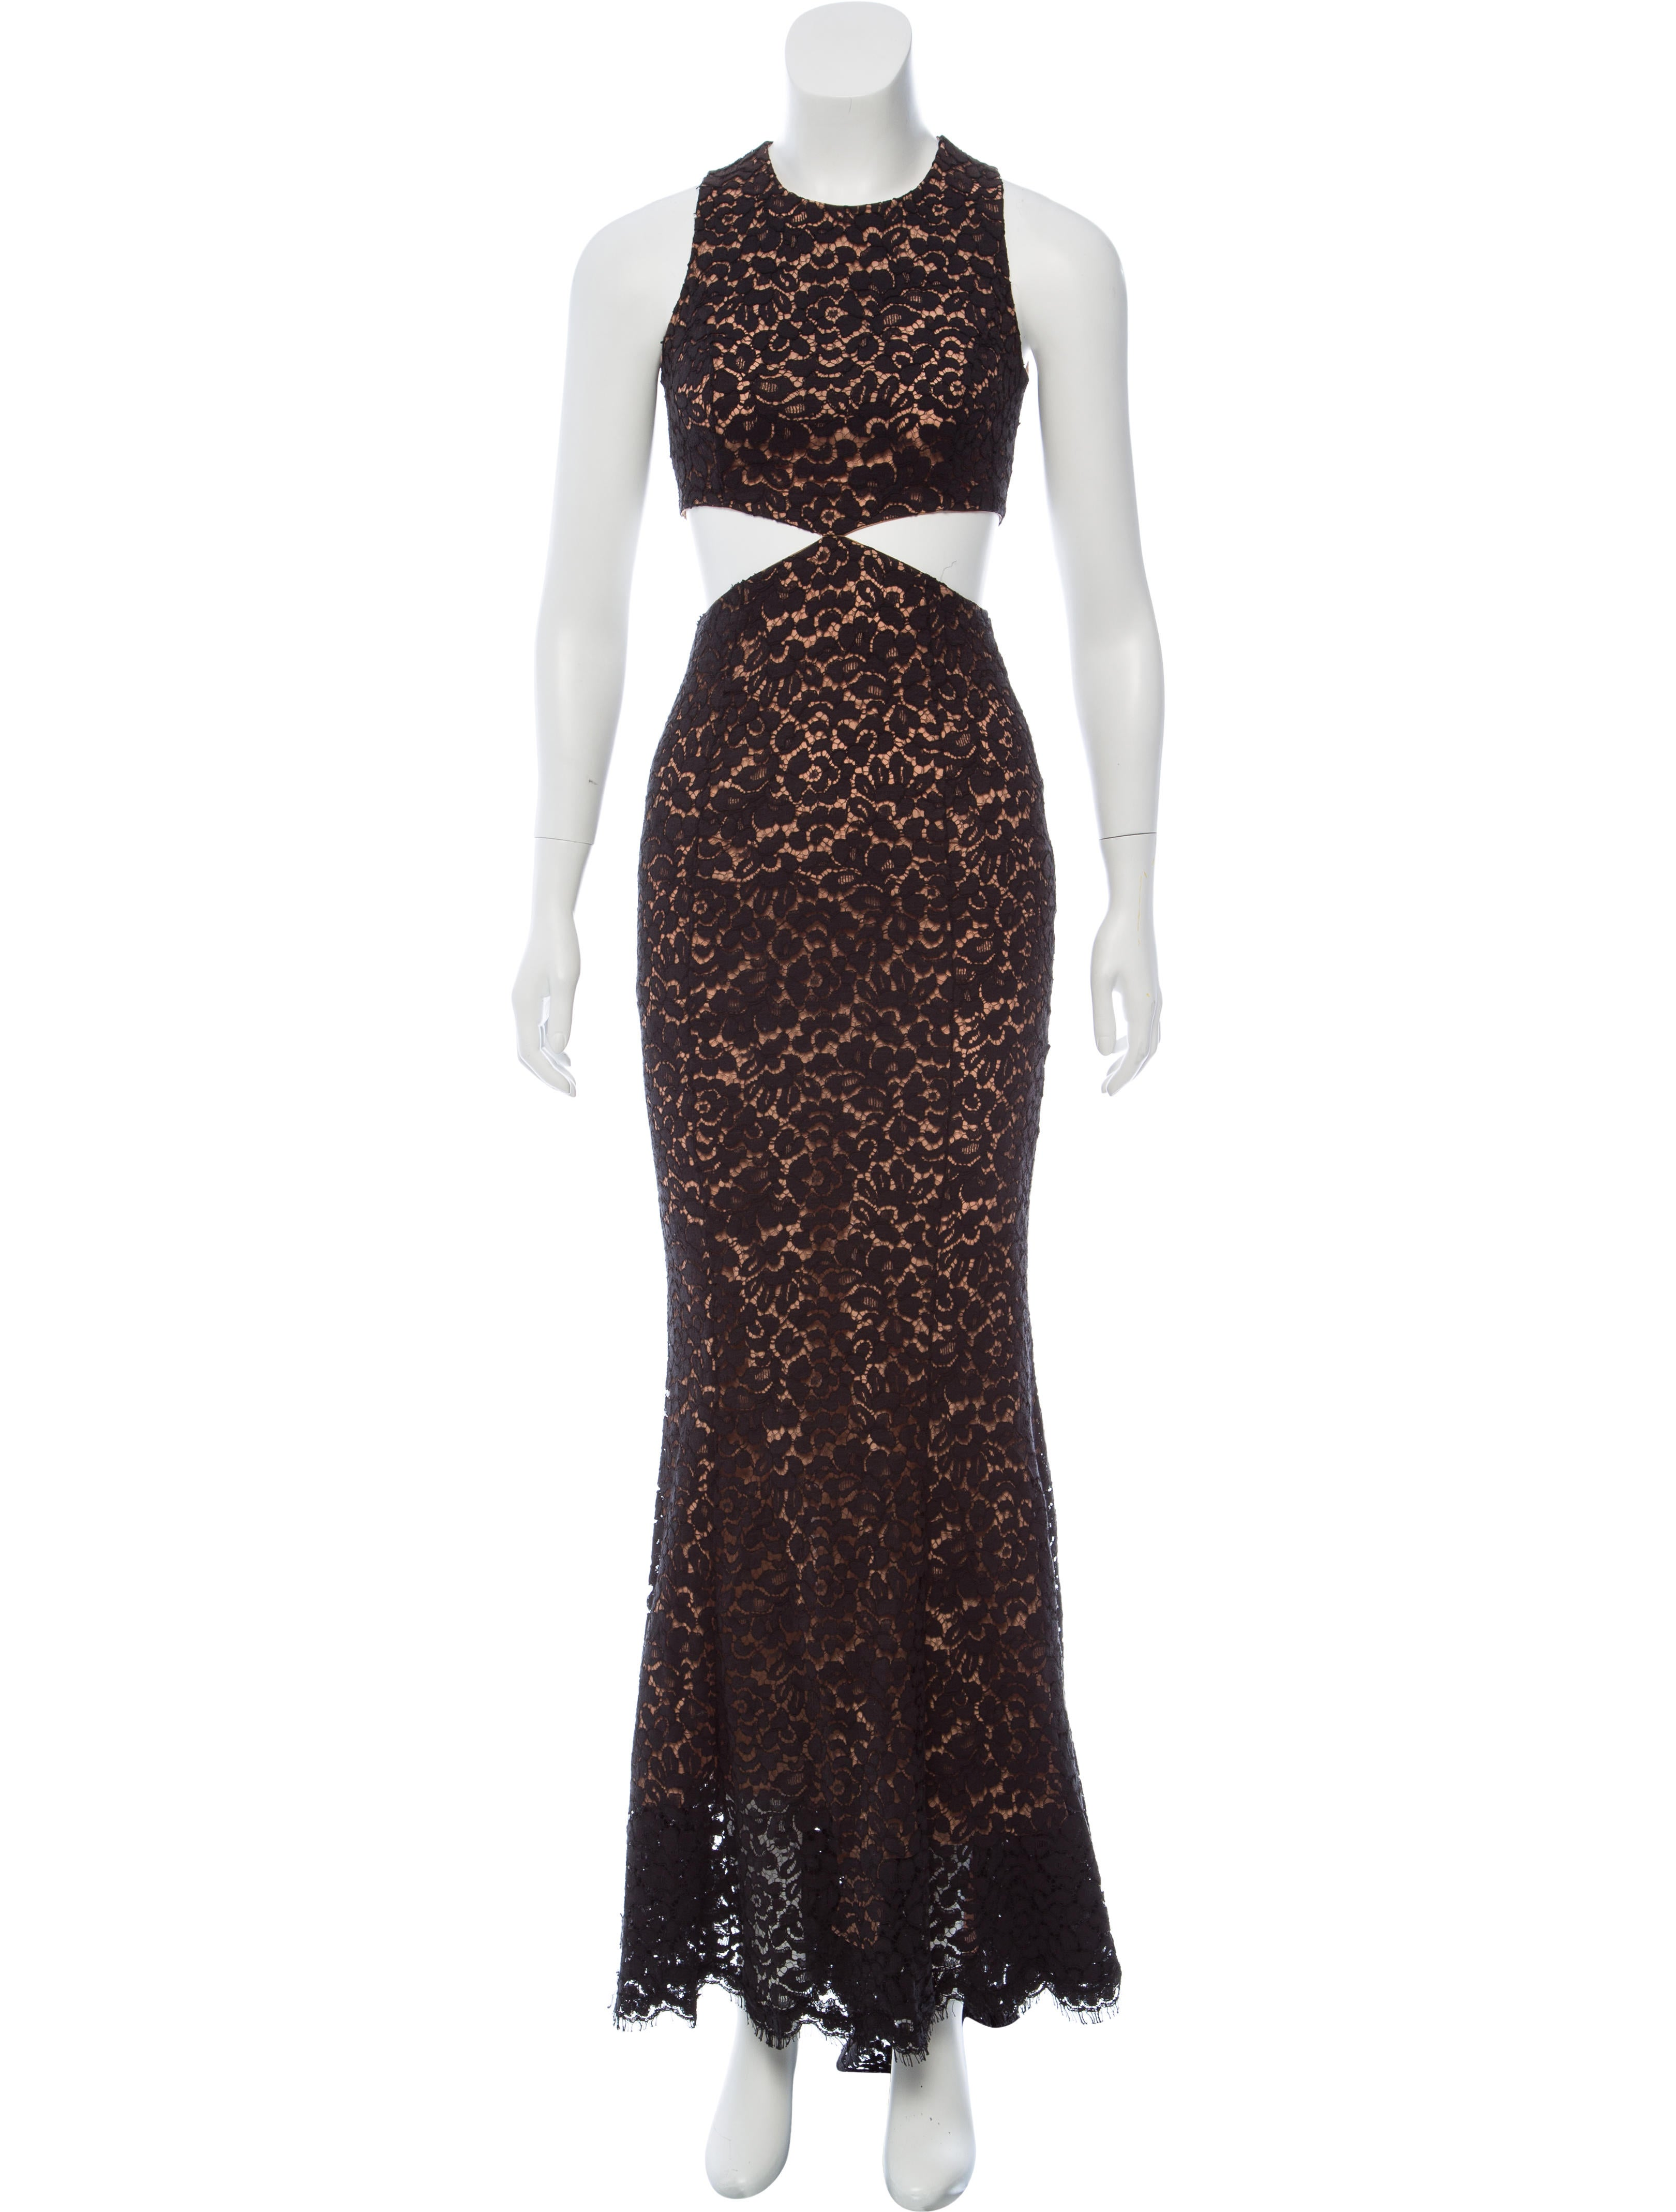 Michael Kors Lace Evening Dress w/ Tags - Clothing - MIC58307 | The ...